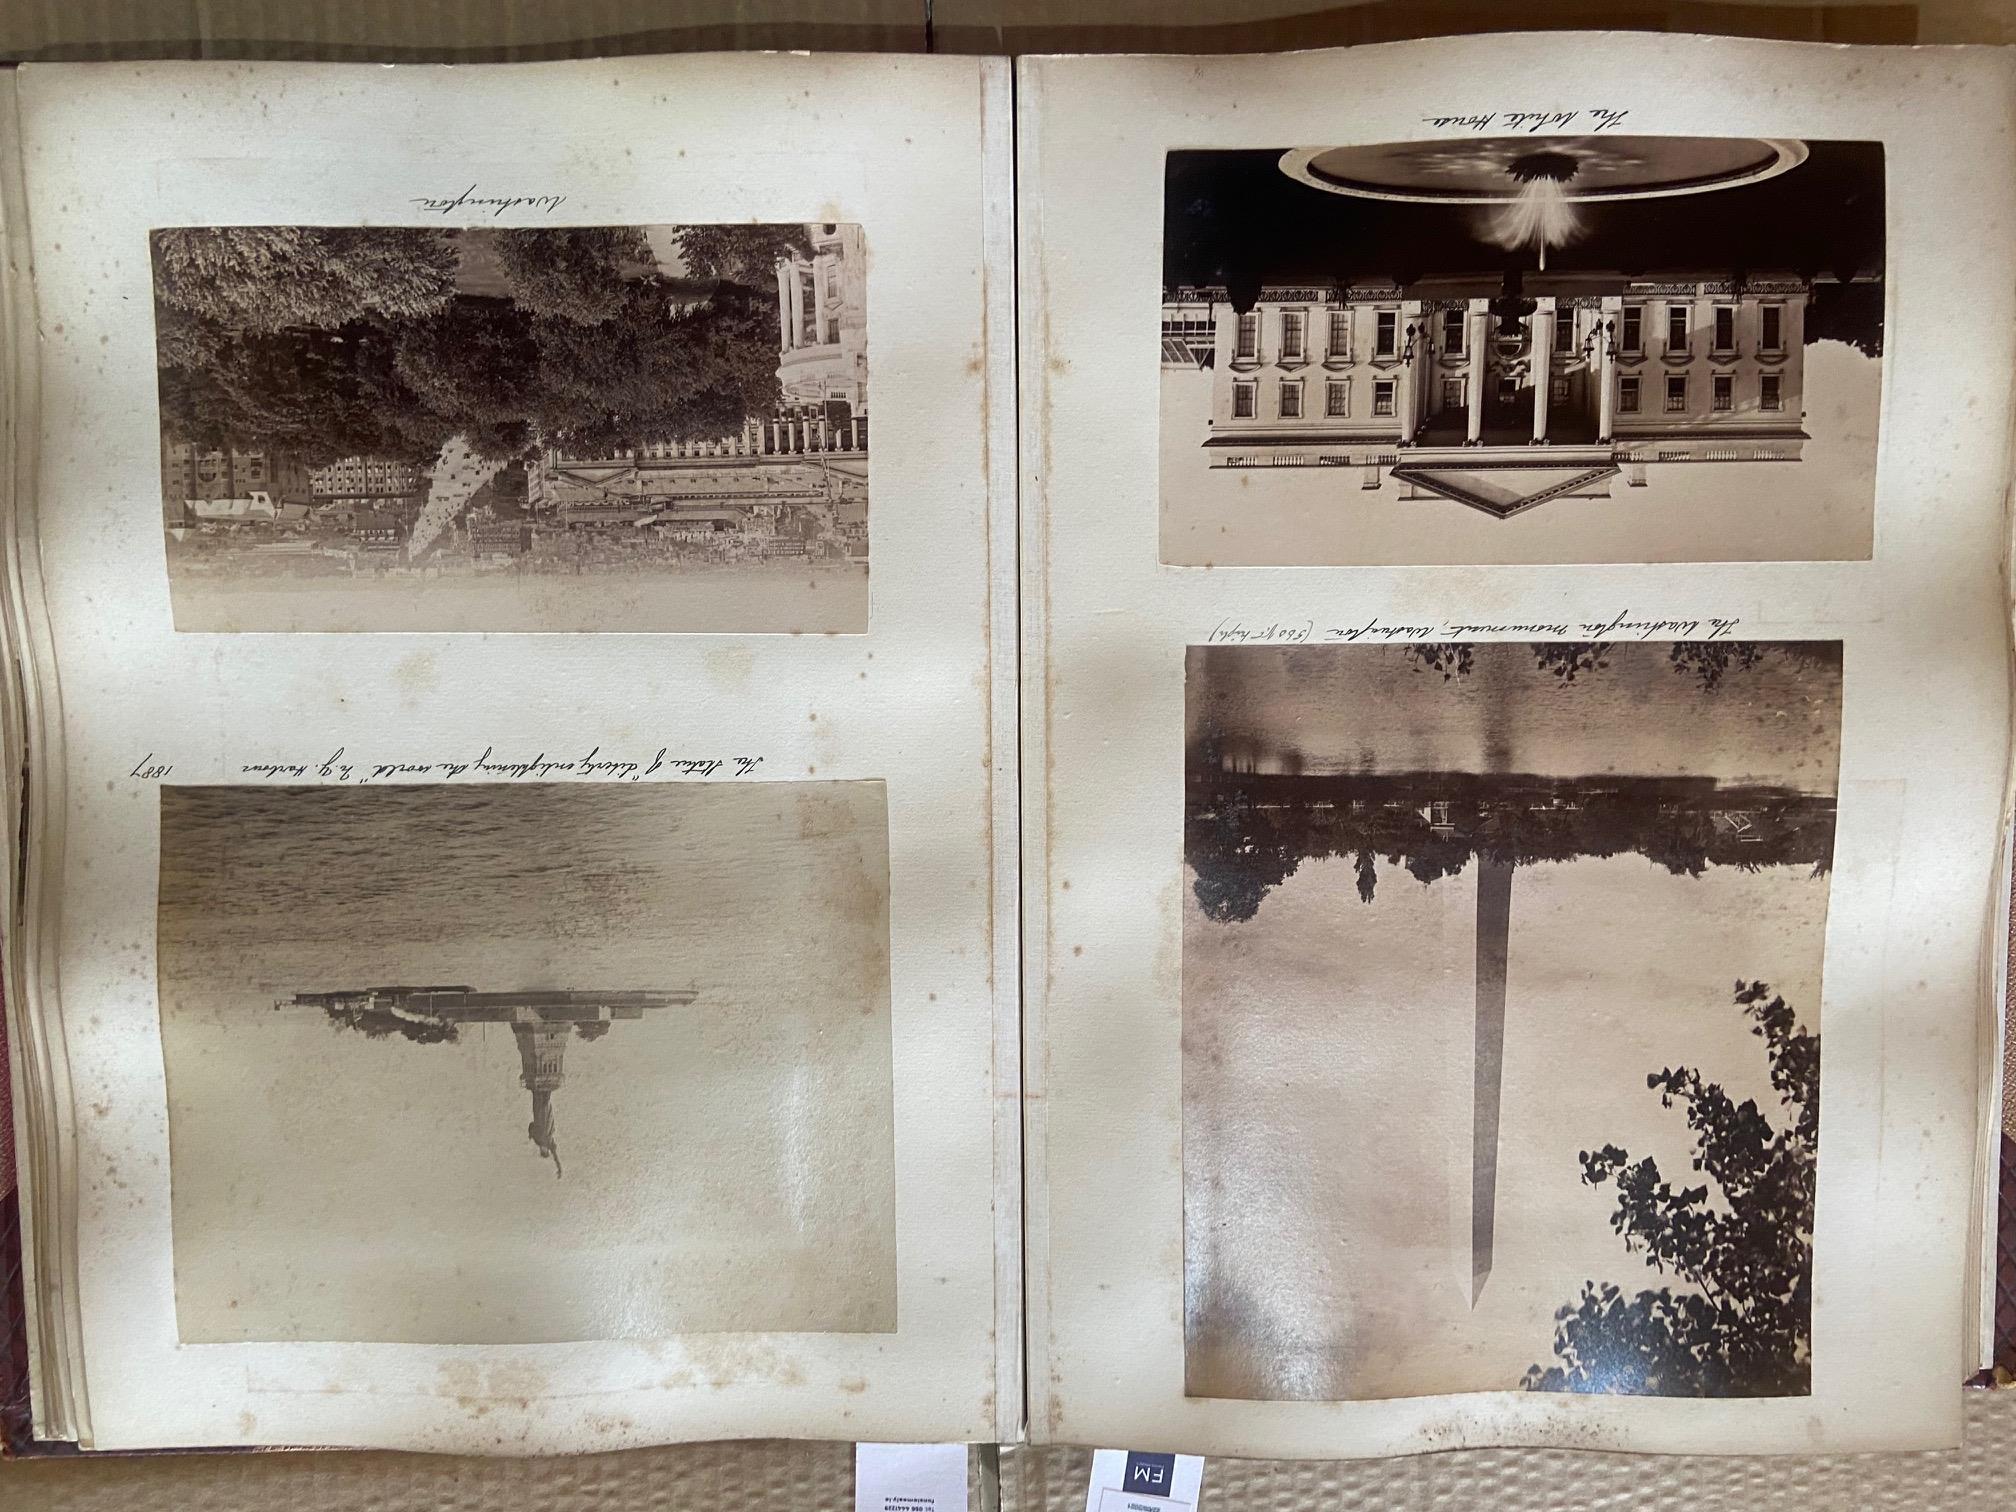 Photographs: Two large folio Albums of Photographs, each c. 1870 - 1890's. One Album contains - Image 4 of 31